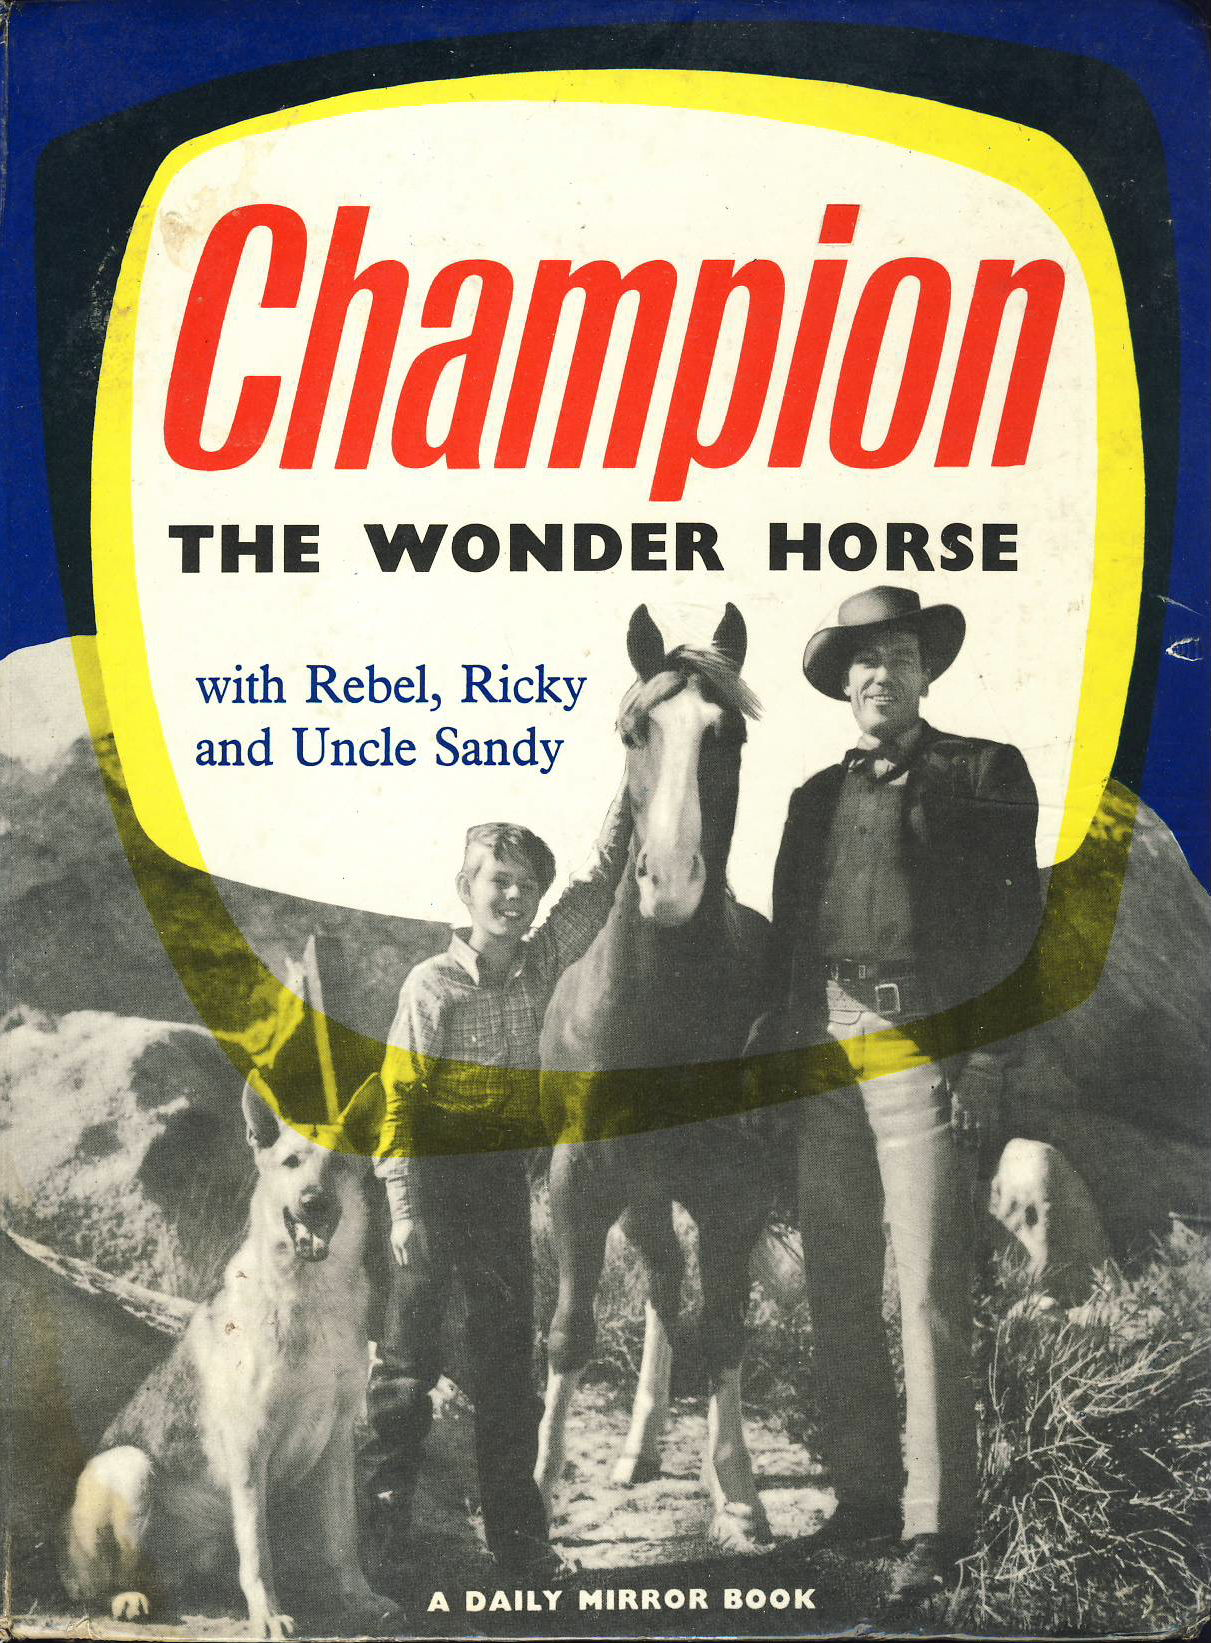 1957 CHAMPION THE WONDER HORSE Daily Mirror book HB ref369 126 pages with Rebel